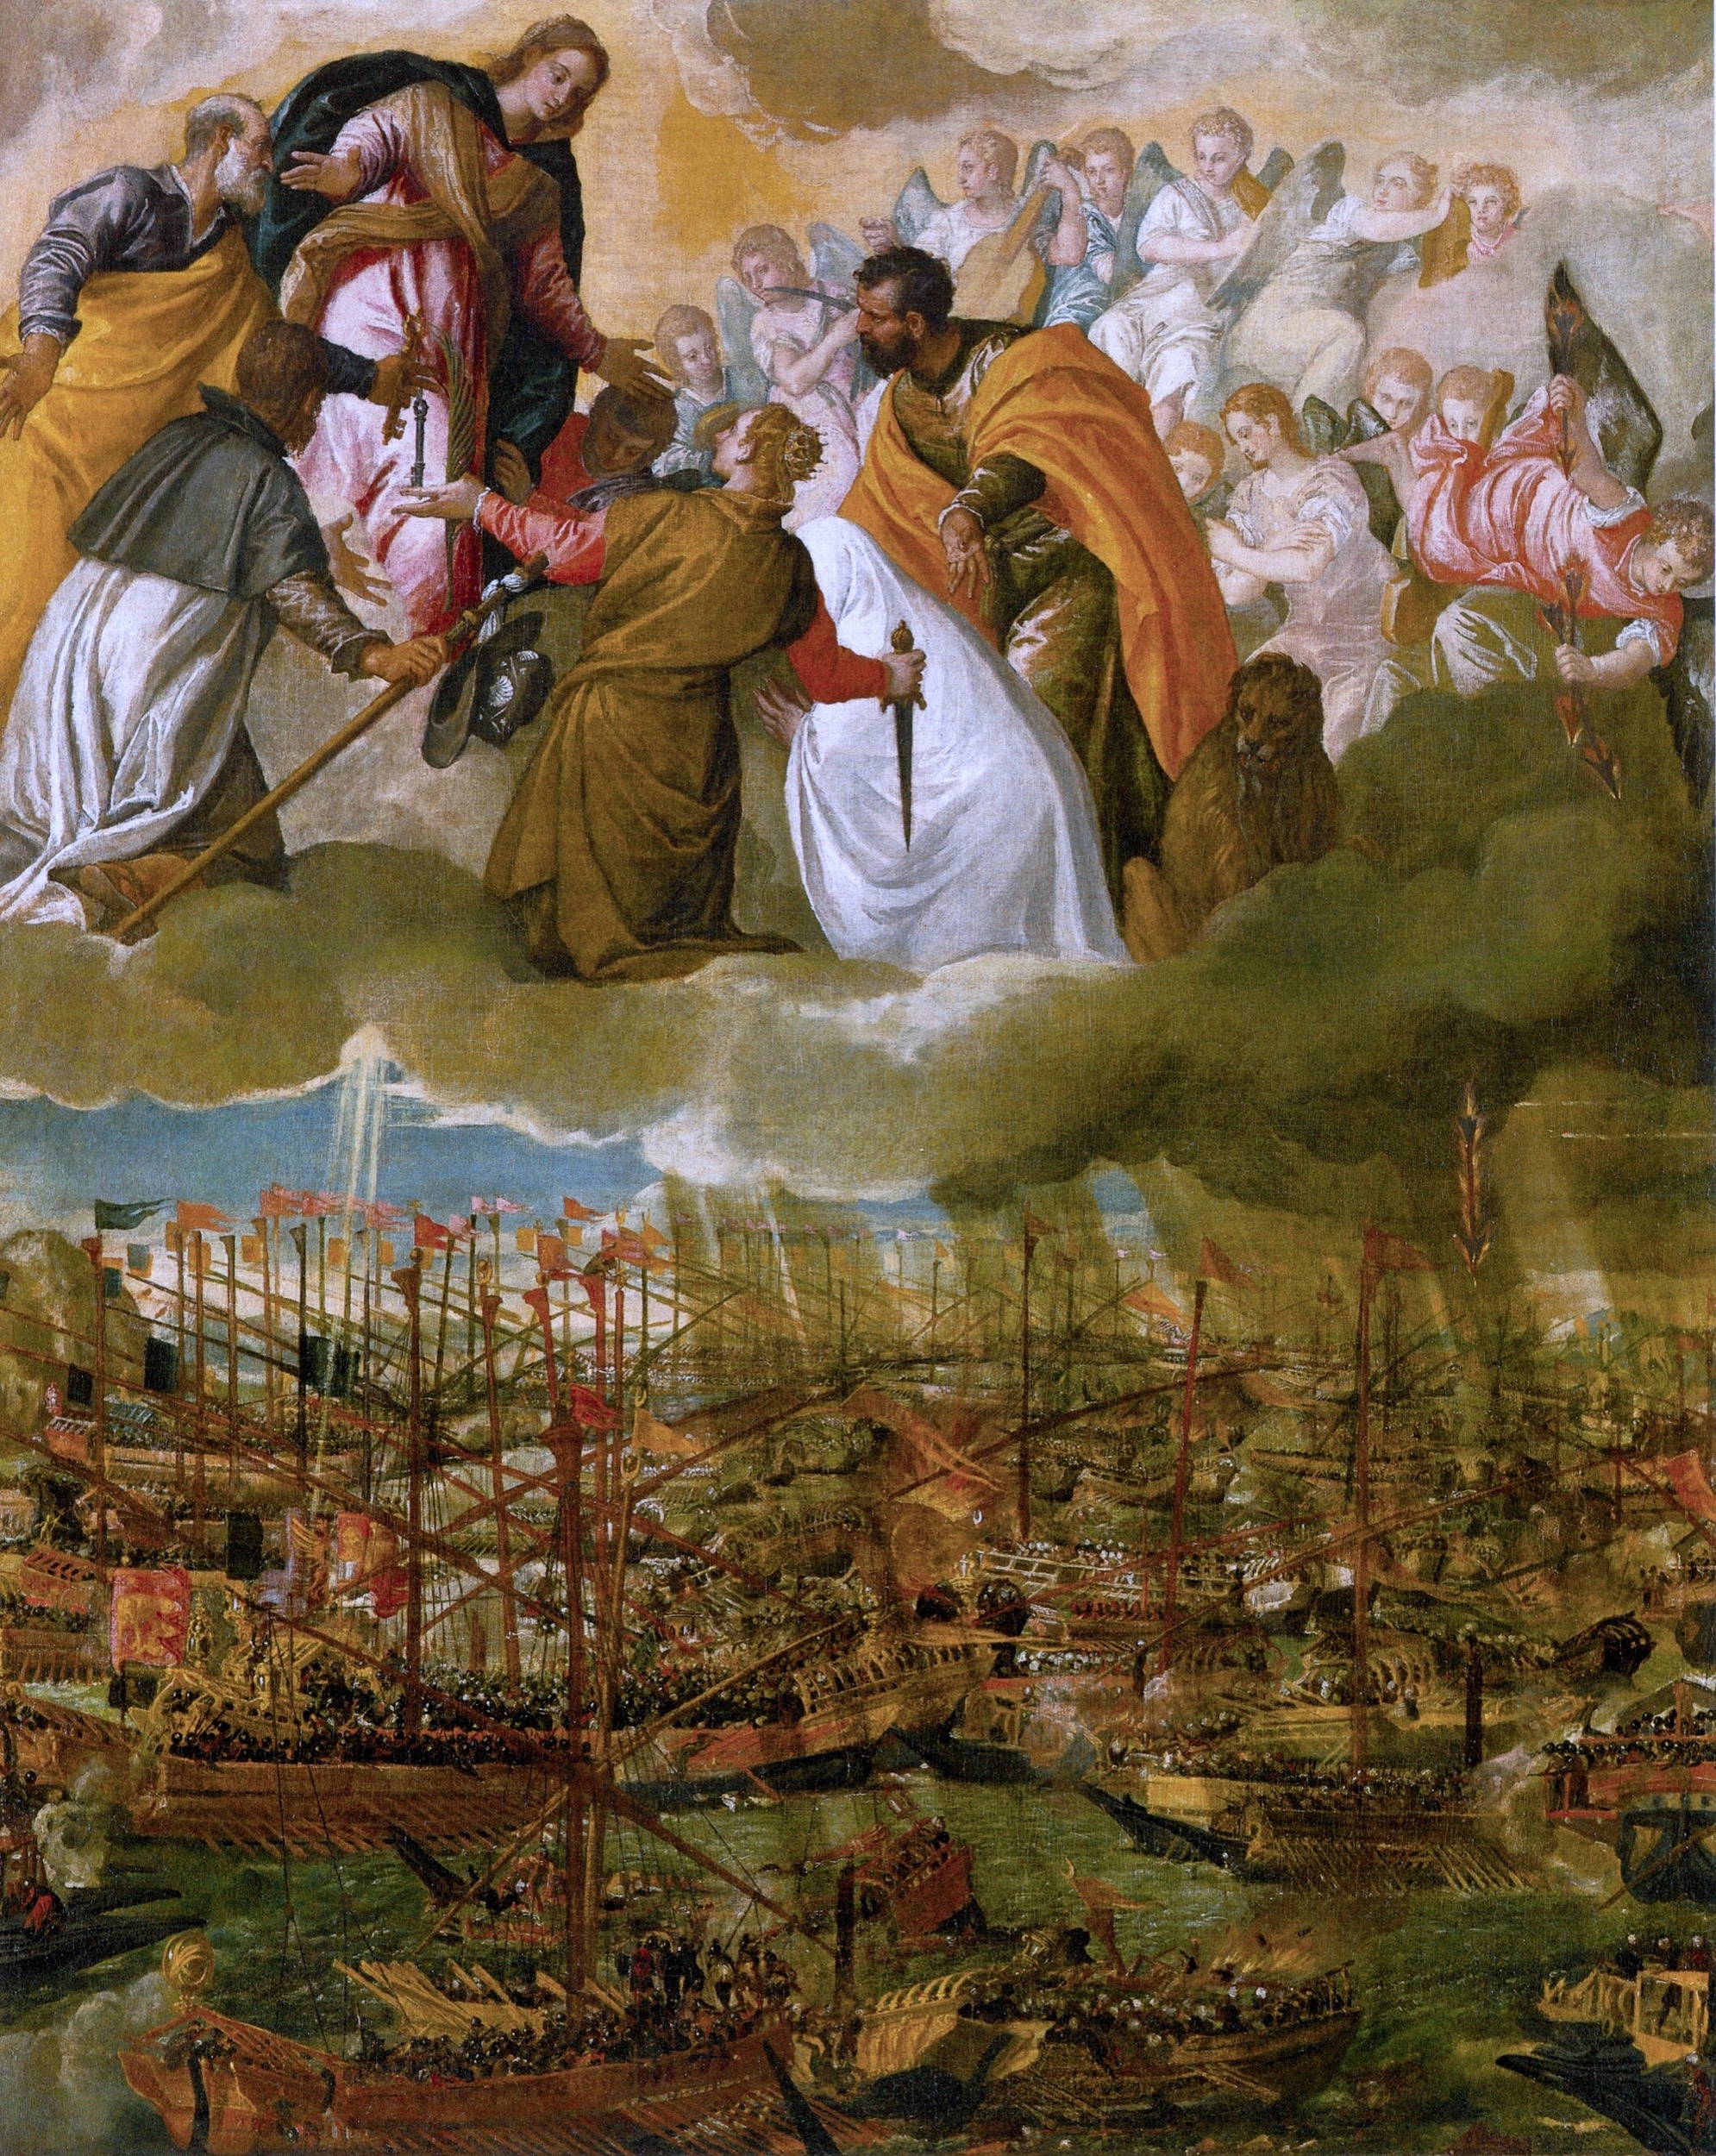 """The Battle of Lepanto"" by Paolo Veronese. Date: 1571. This work is in the public domain.      {{PD-US}}"